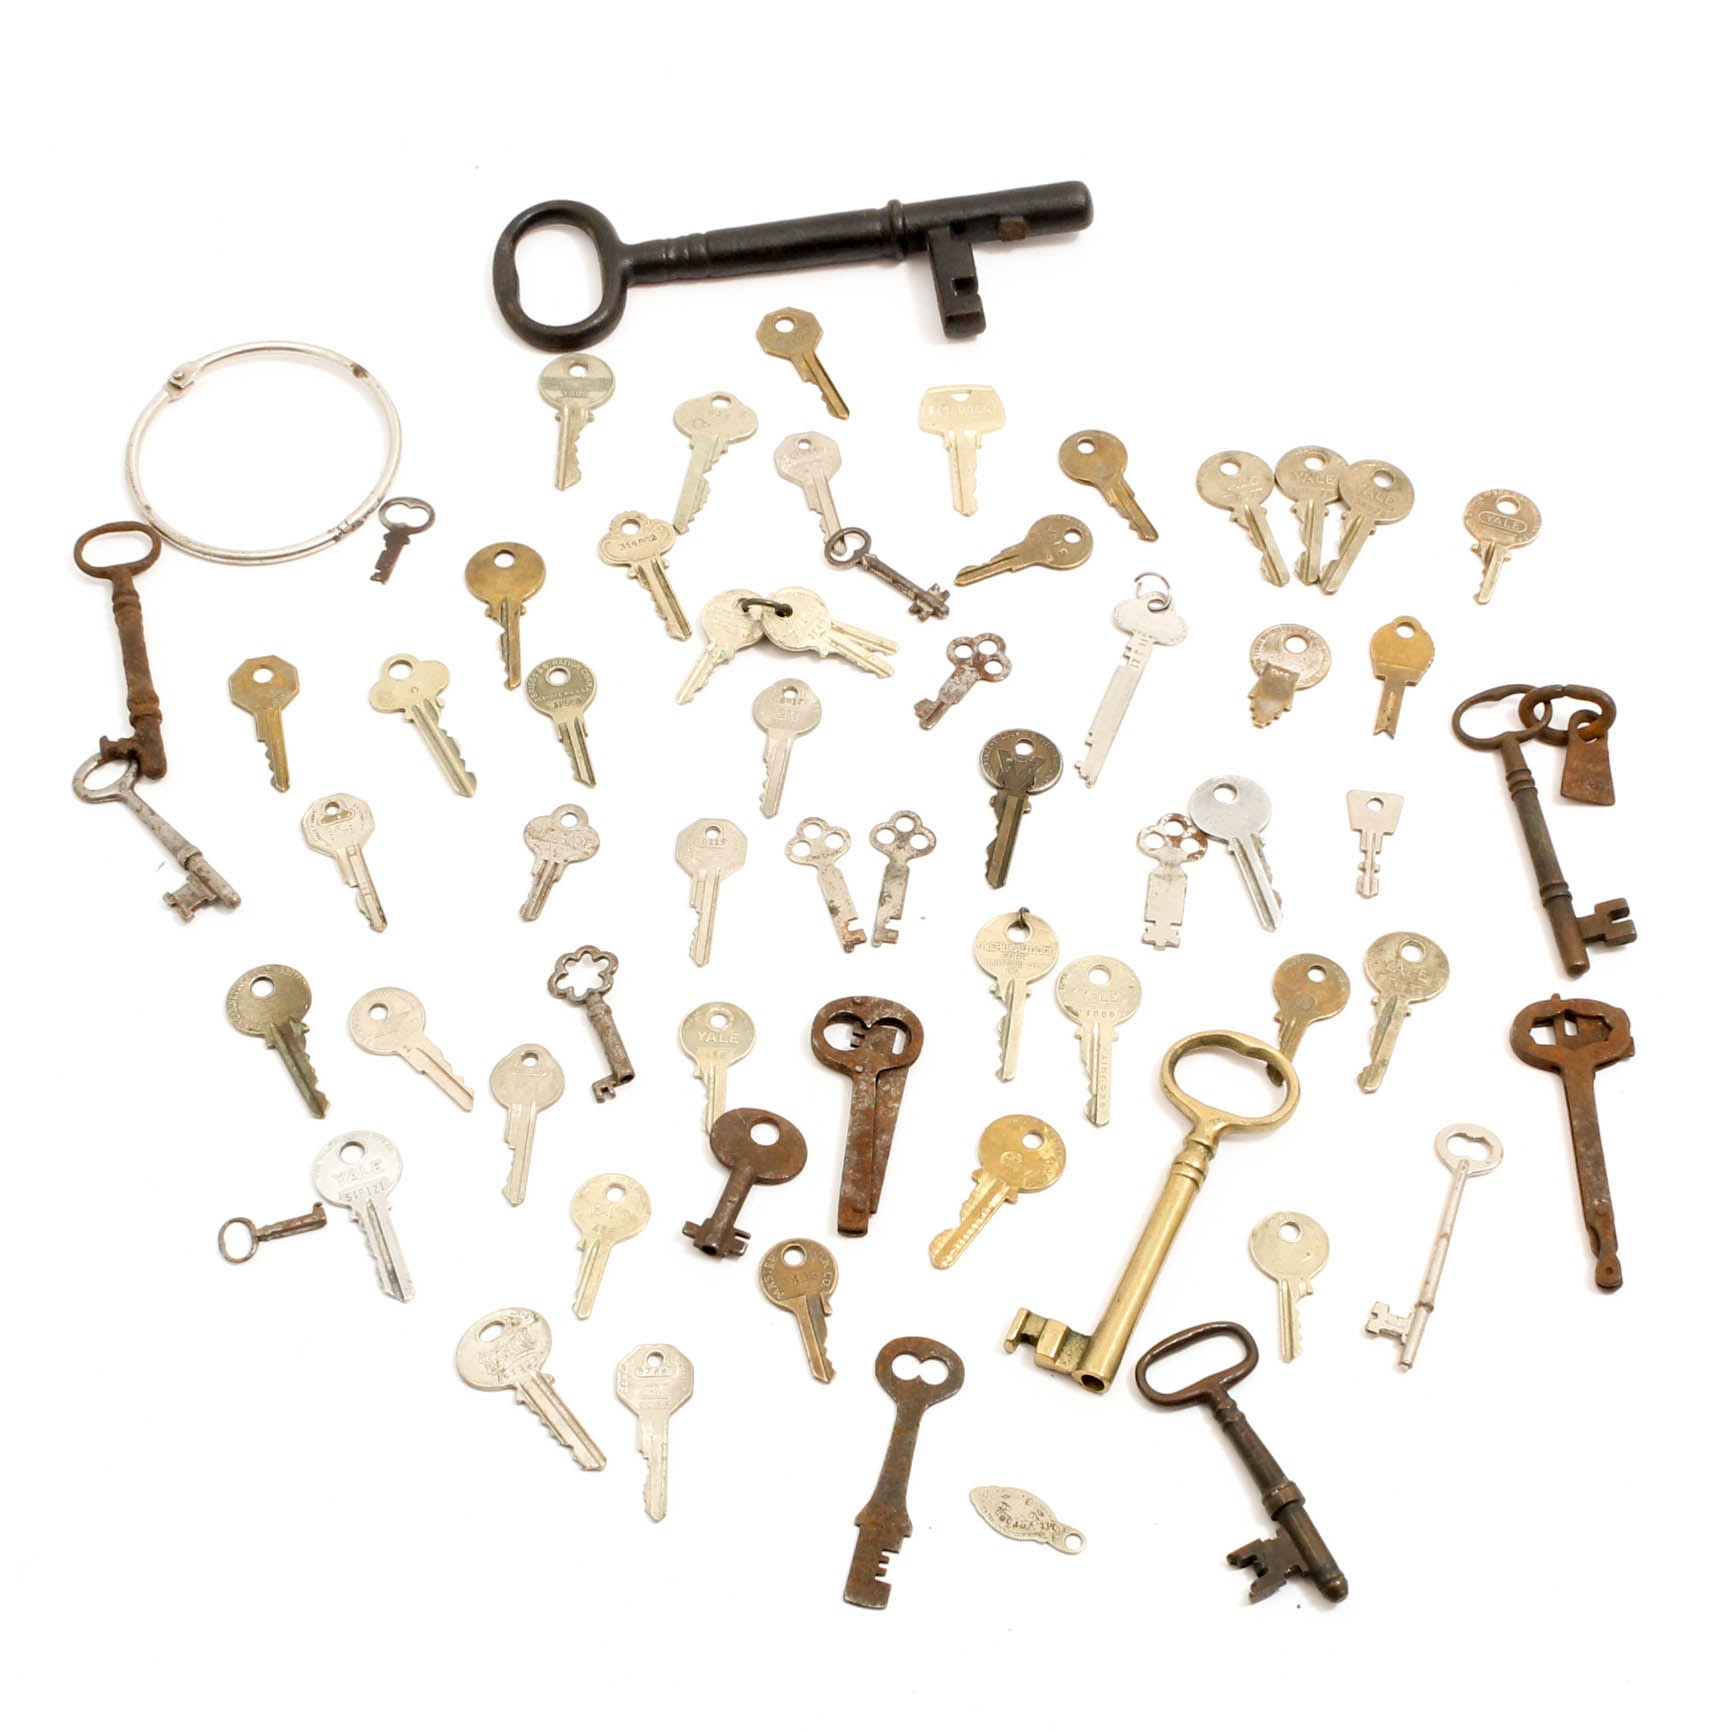 Antique and Antique Style Metal Keys